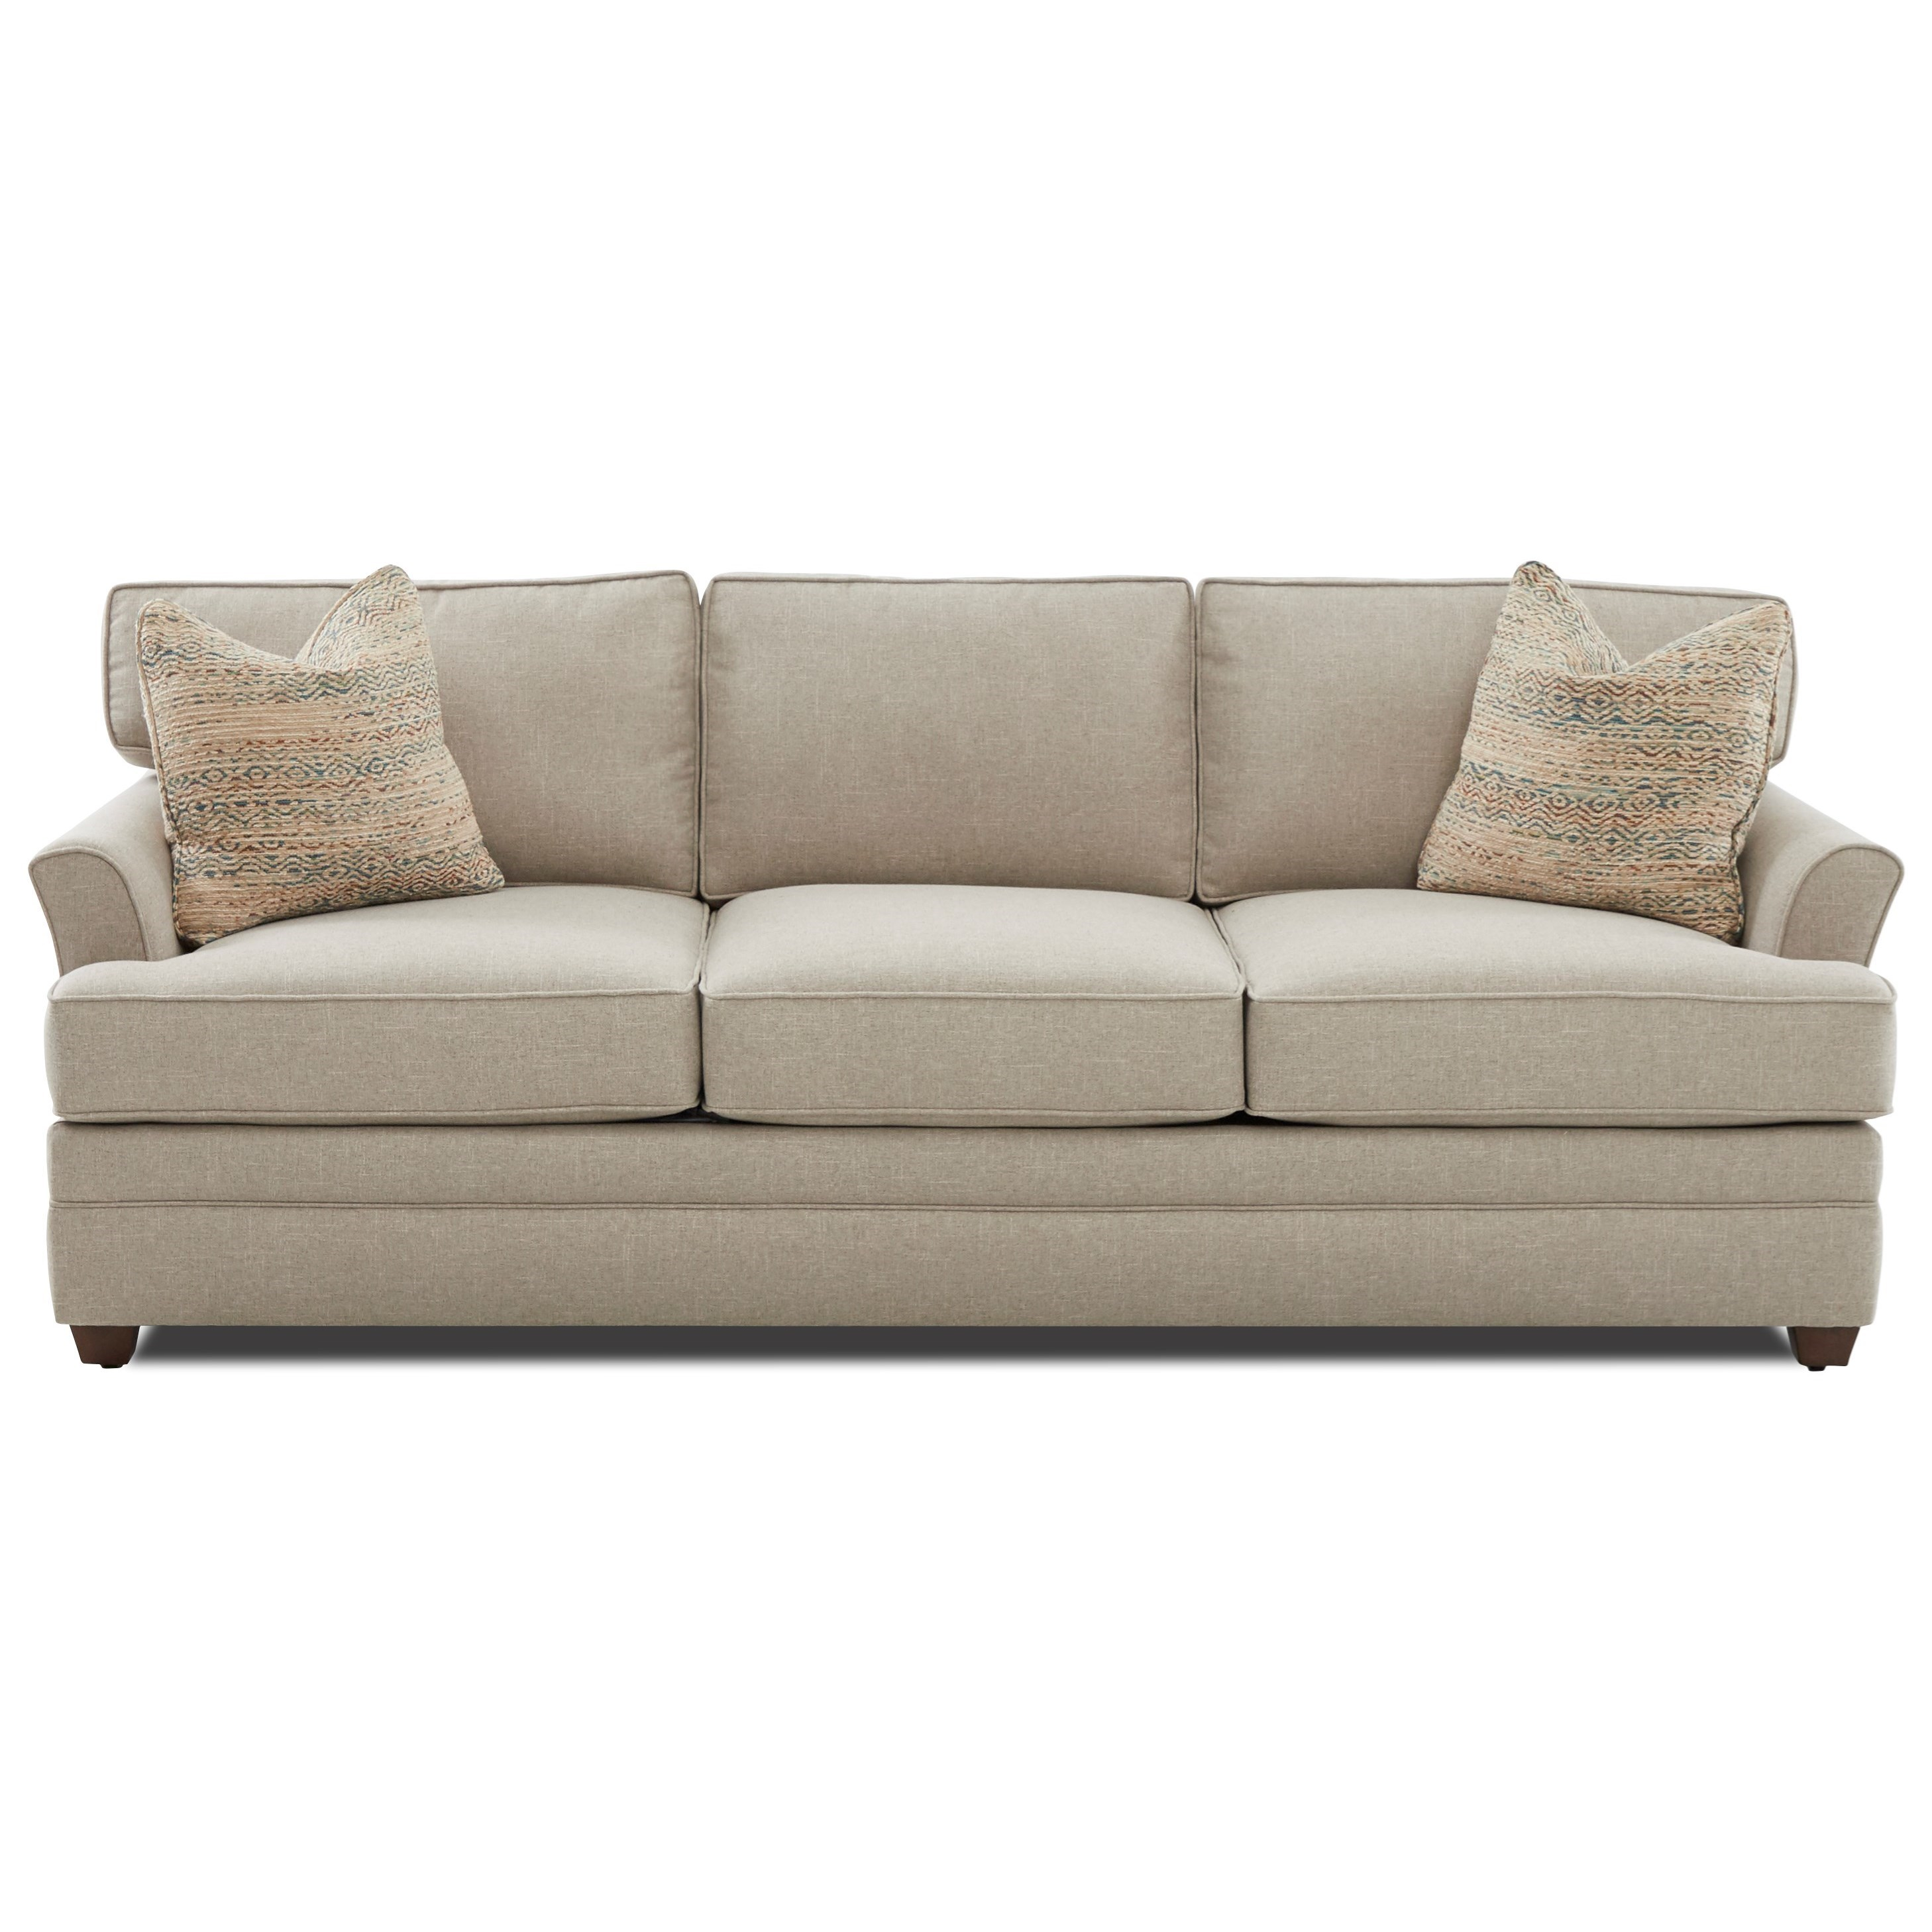 Living Your Way Dreamquest Sofa Sleeper by Klaussner at Northeast Factory Direct